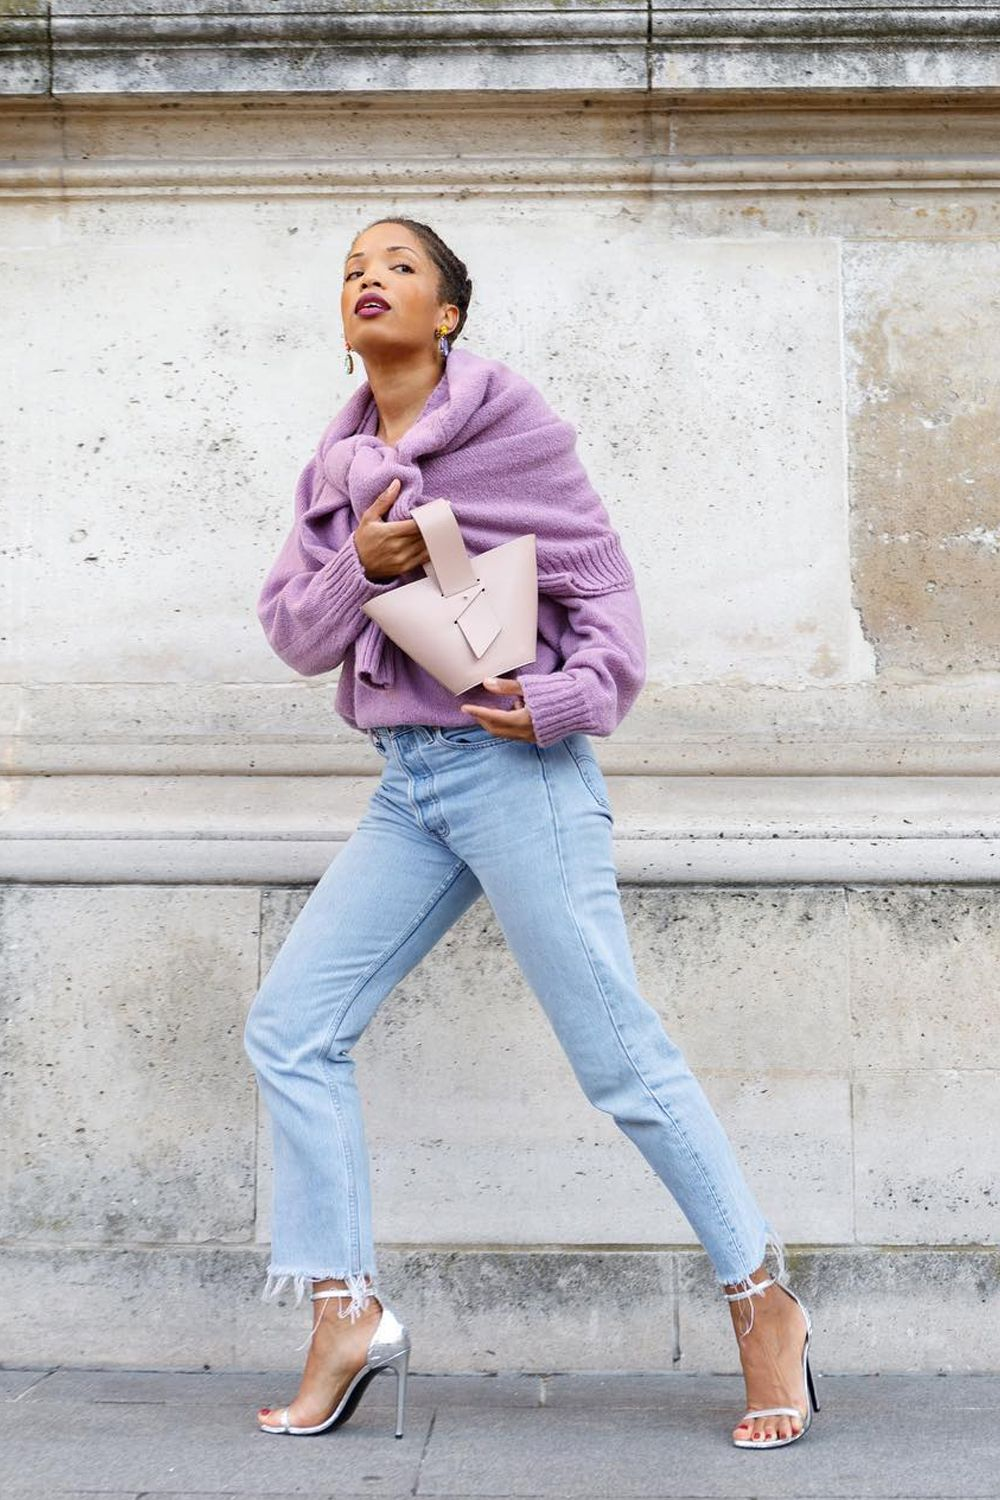 7 Jeans-and-Jumper Outfits That I Swear By For Low-Maintenance Style pics